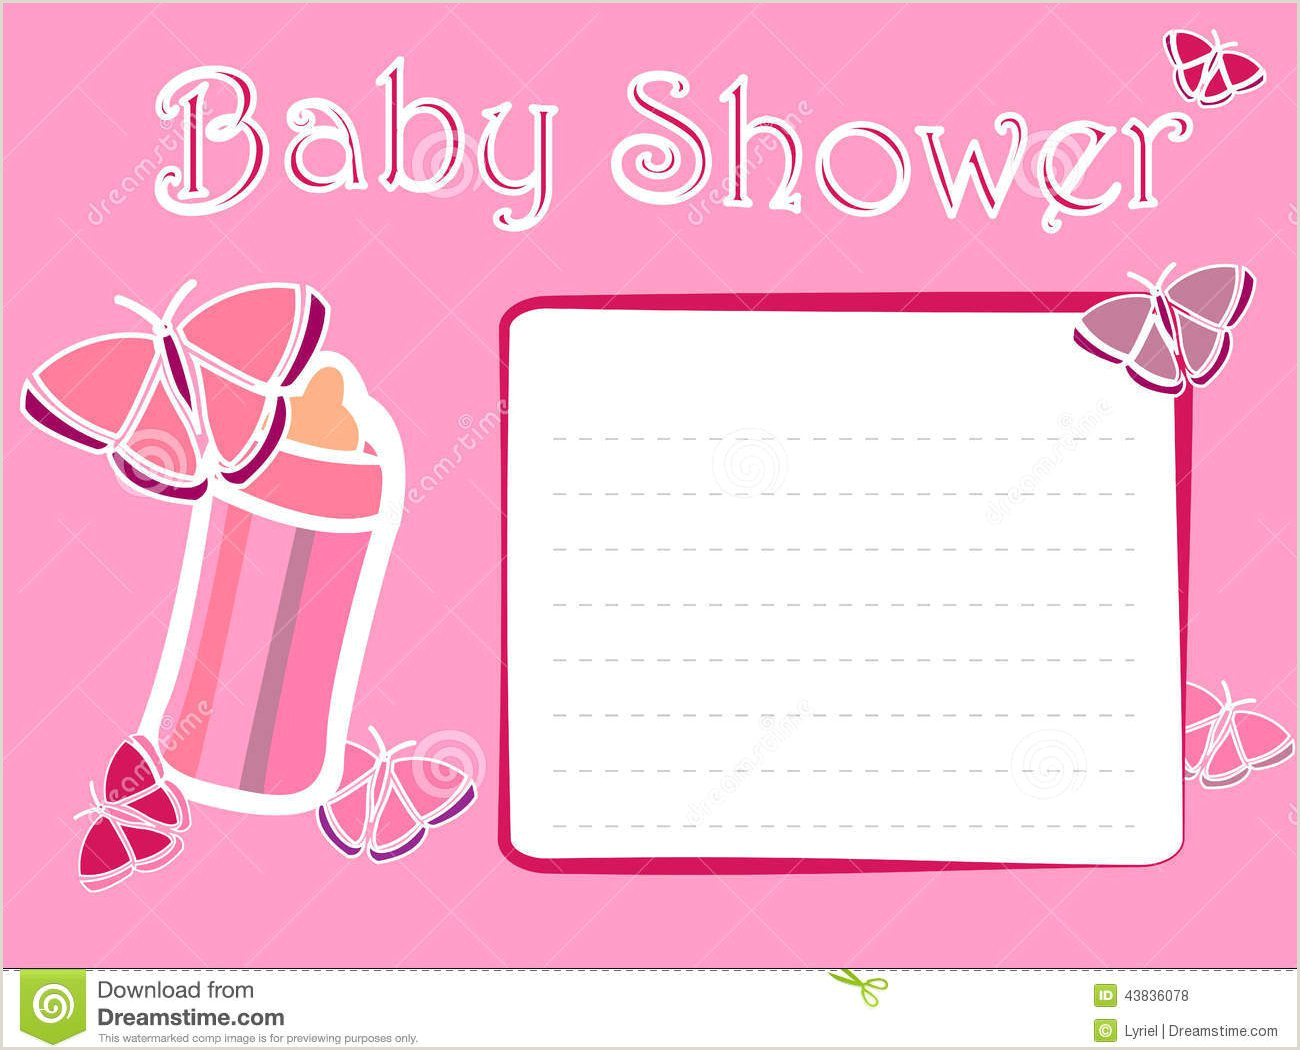 Baby Onesie Template for Baby Shower Invitations Free Printable Baby Shower Invitations Templates Unique